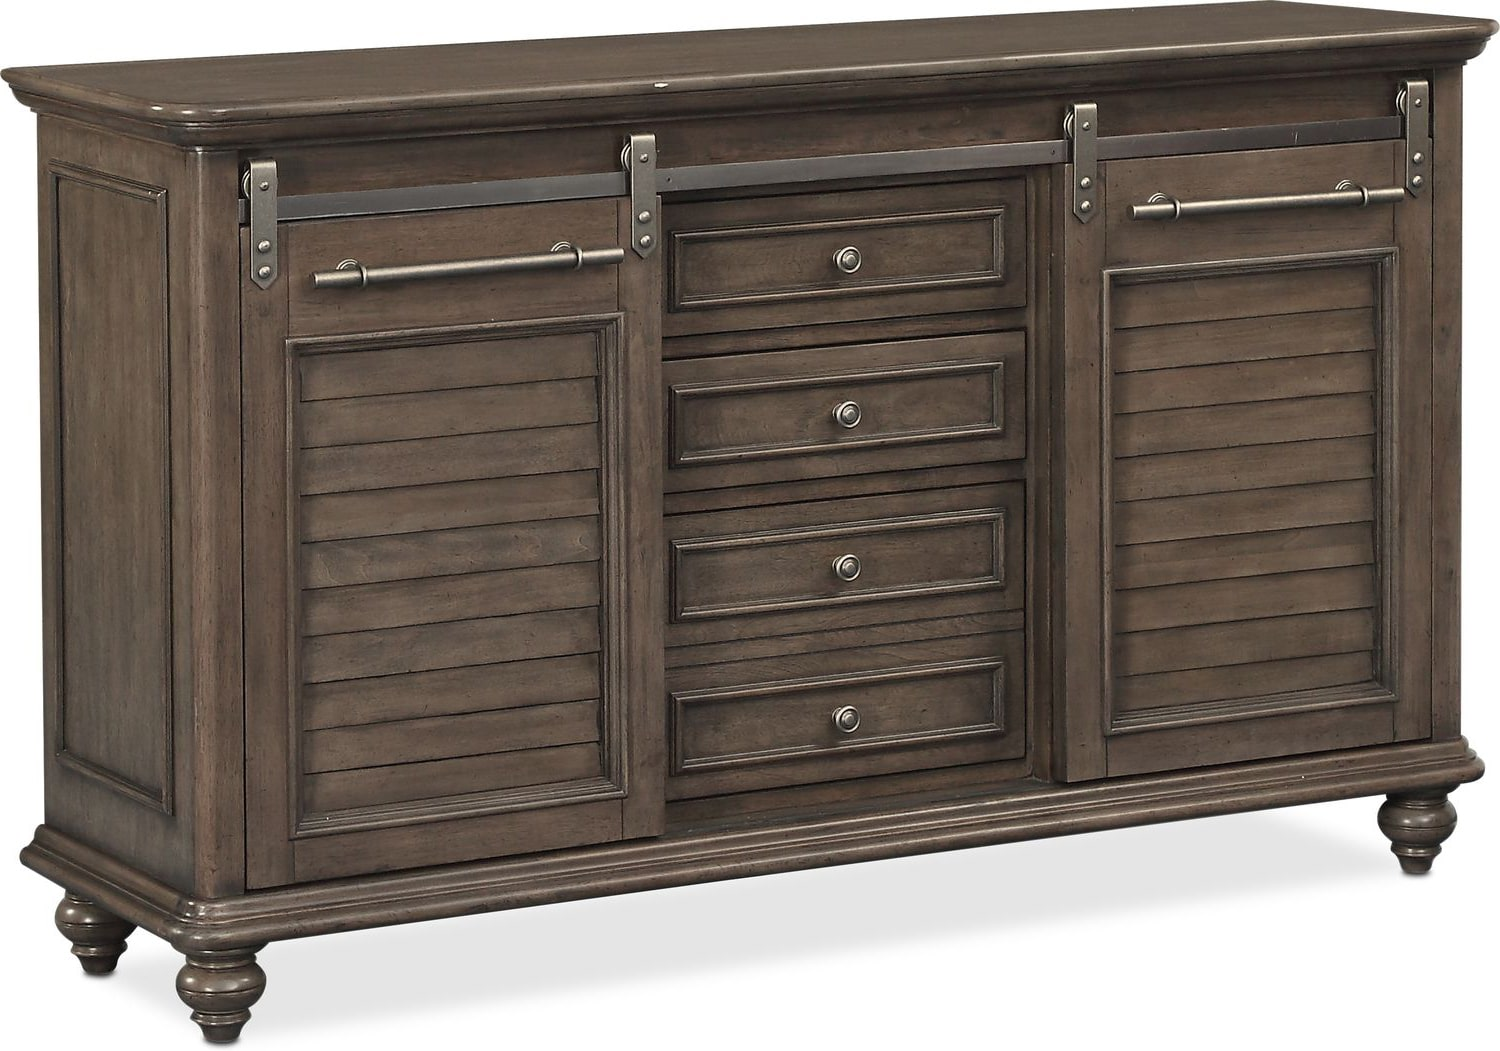 Dining Room Furniture - Charleston Buffet